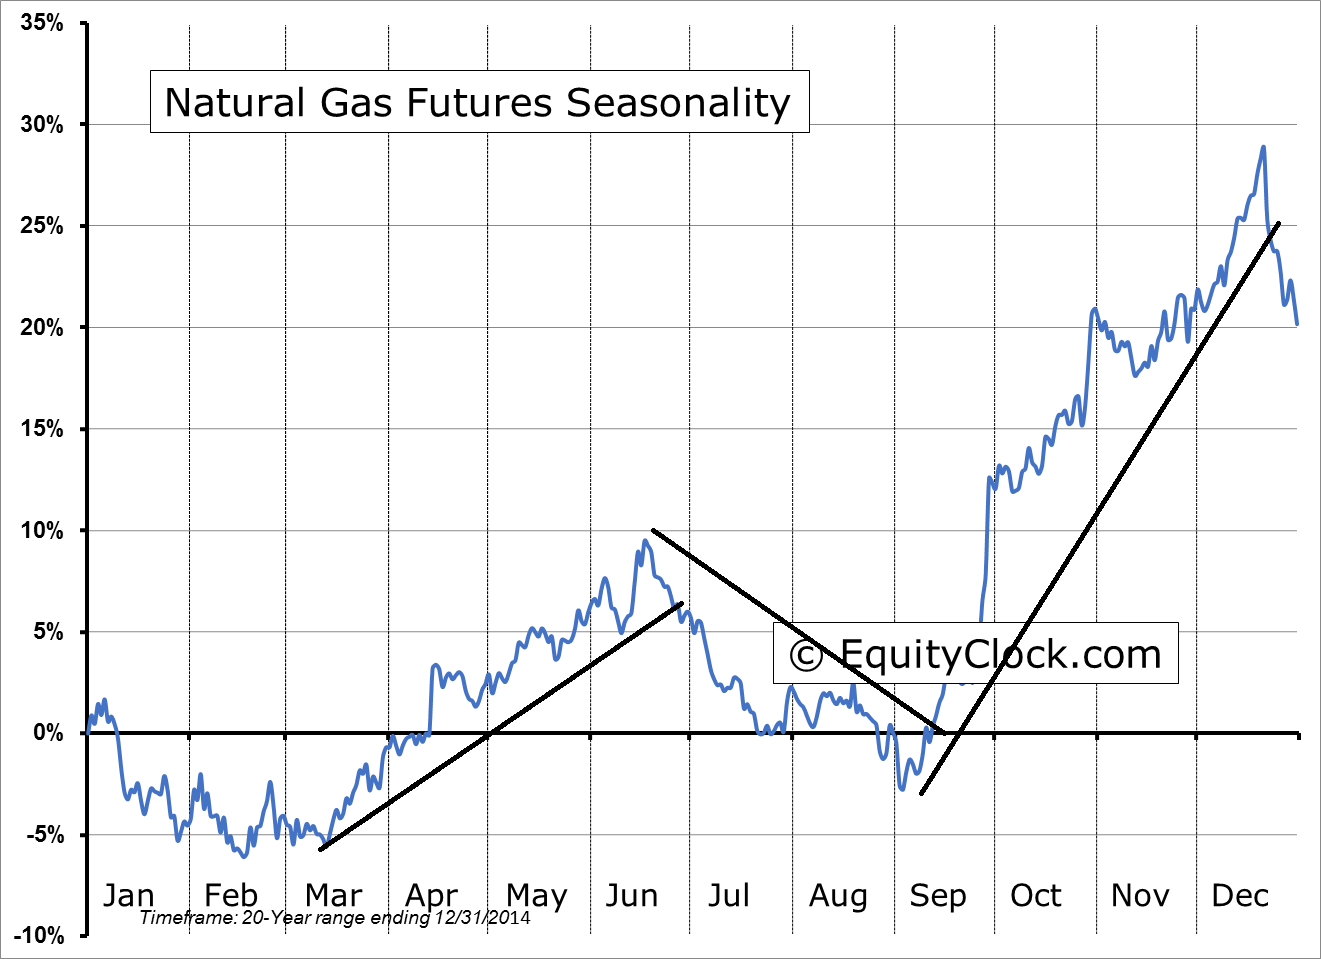 Equityclock Nat Gas